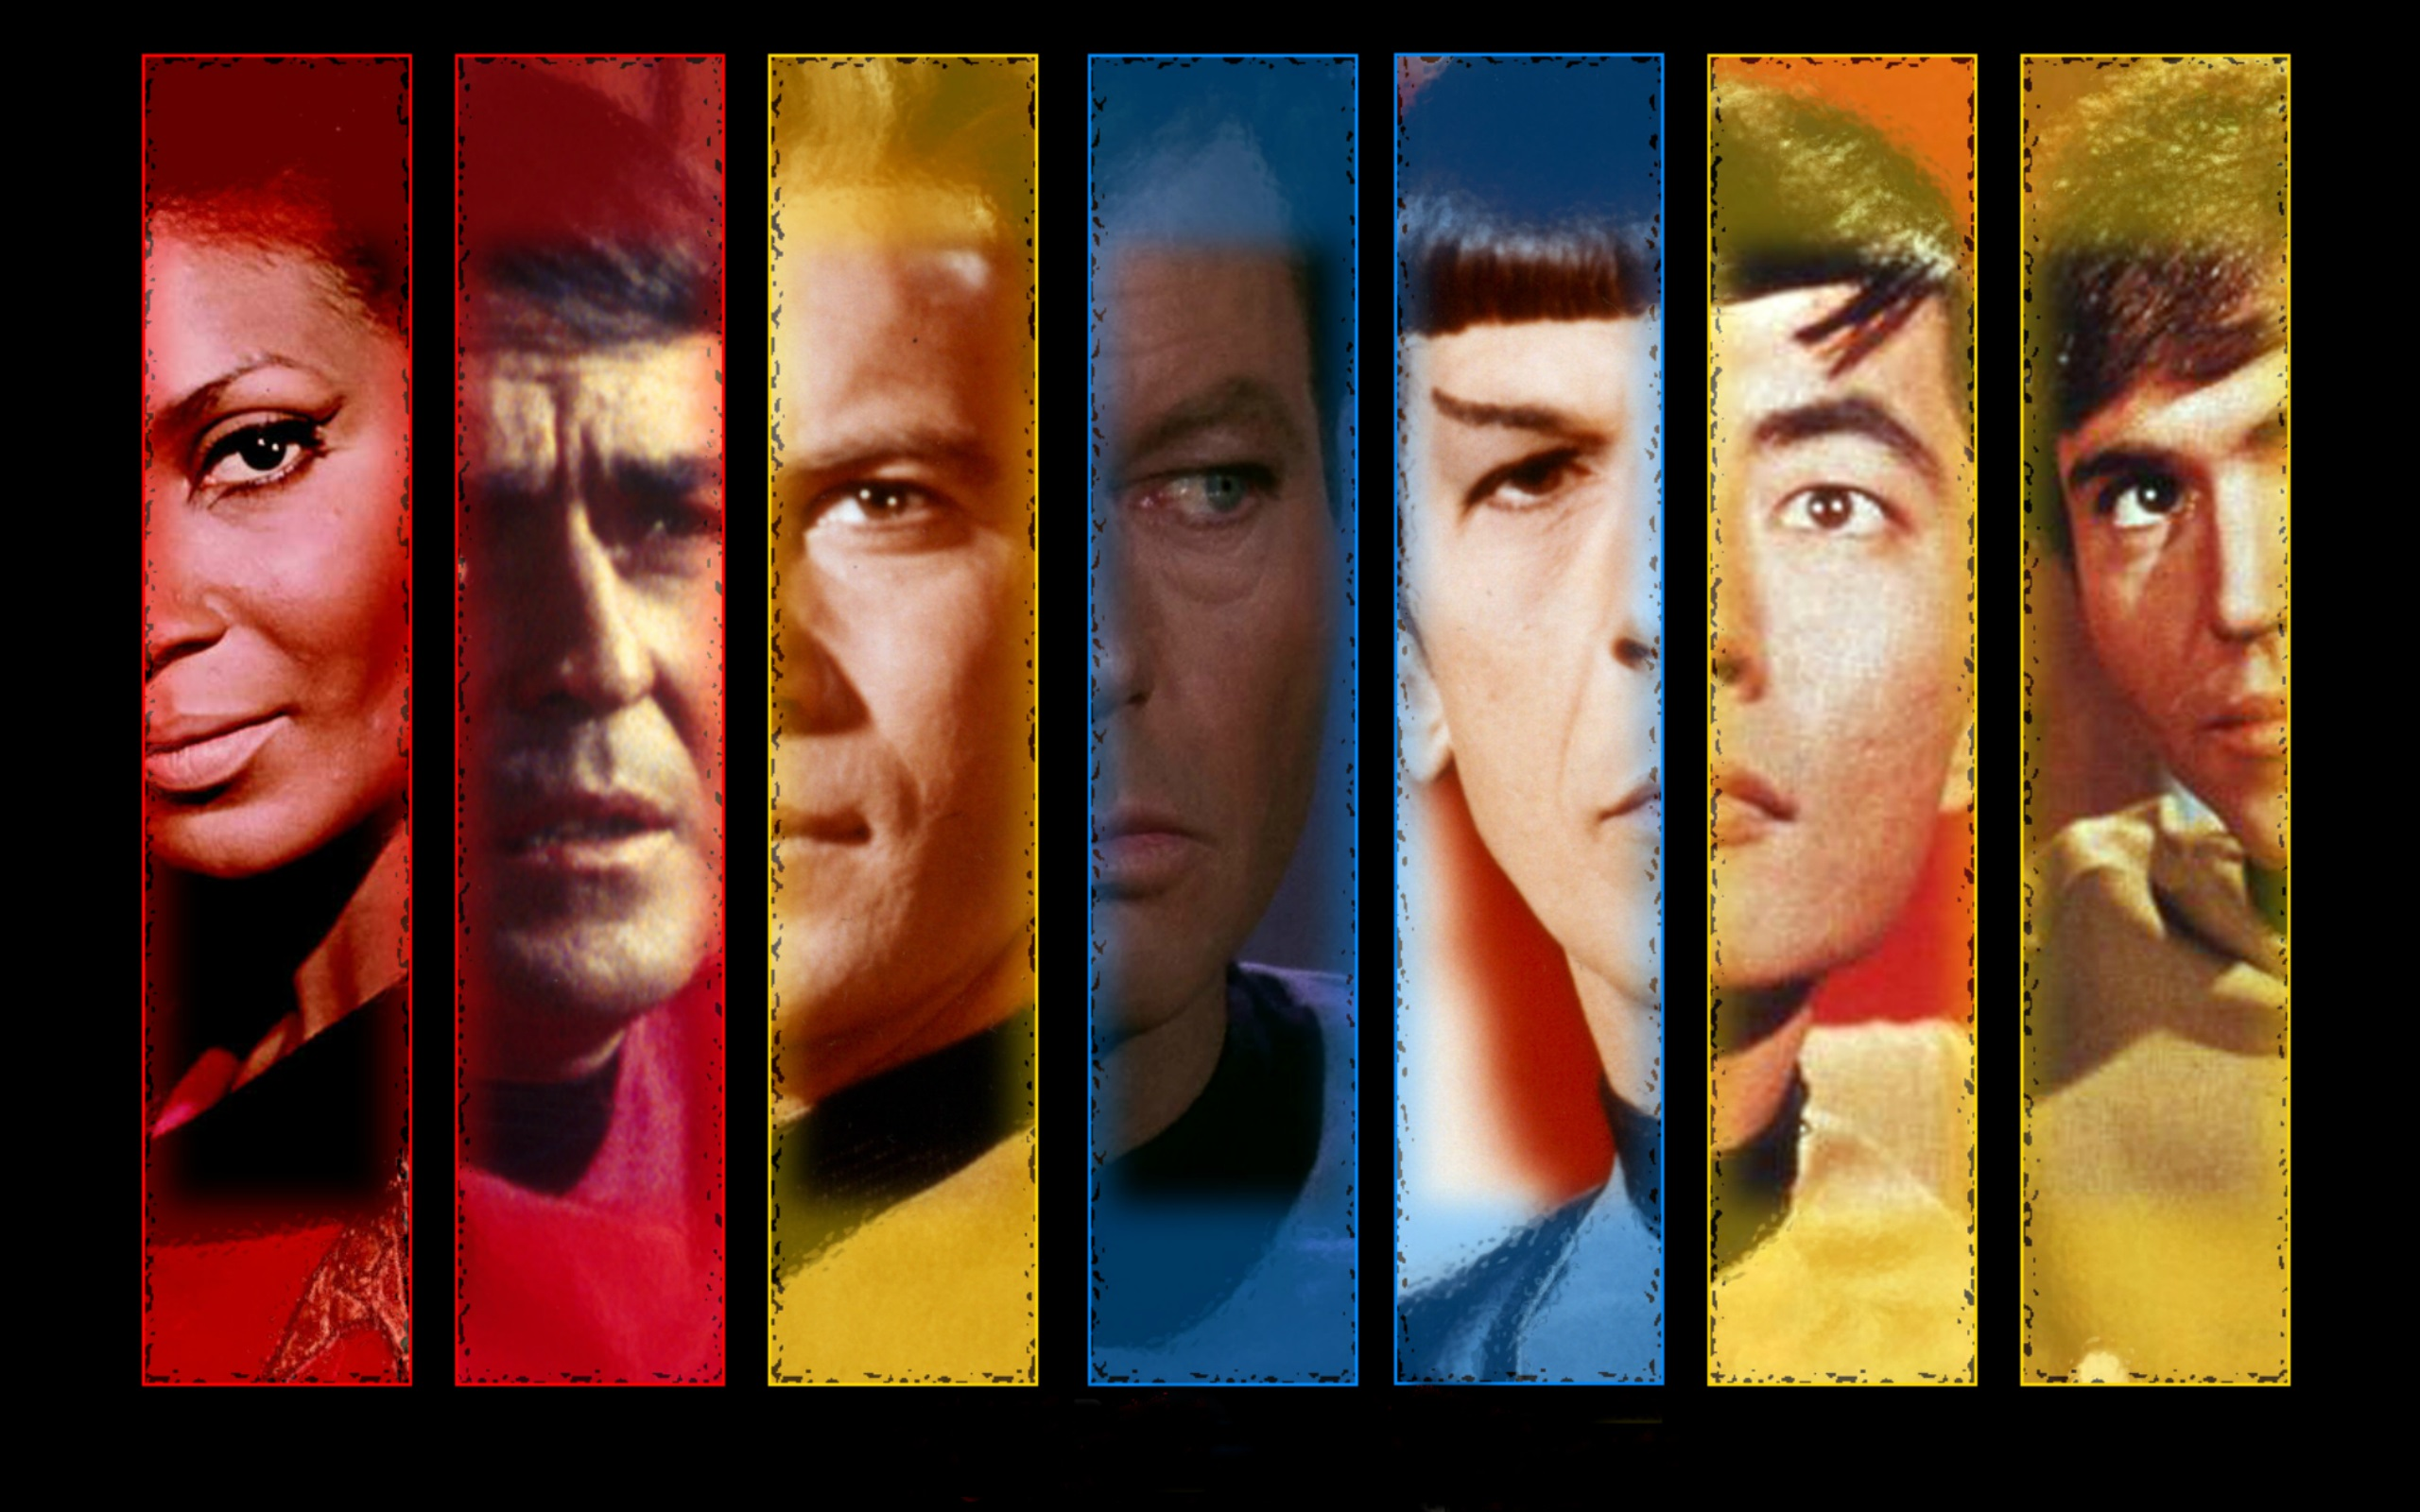 Star Trek: The Original Series Widescreen Wallpaper